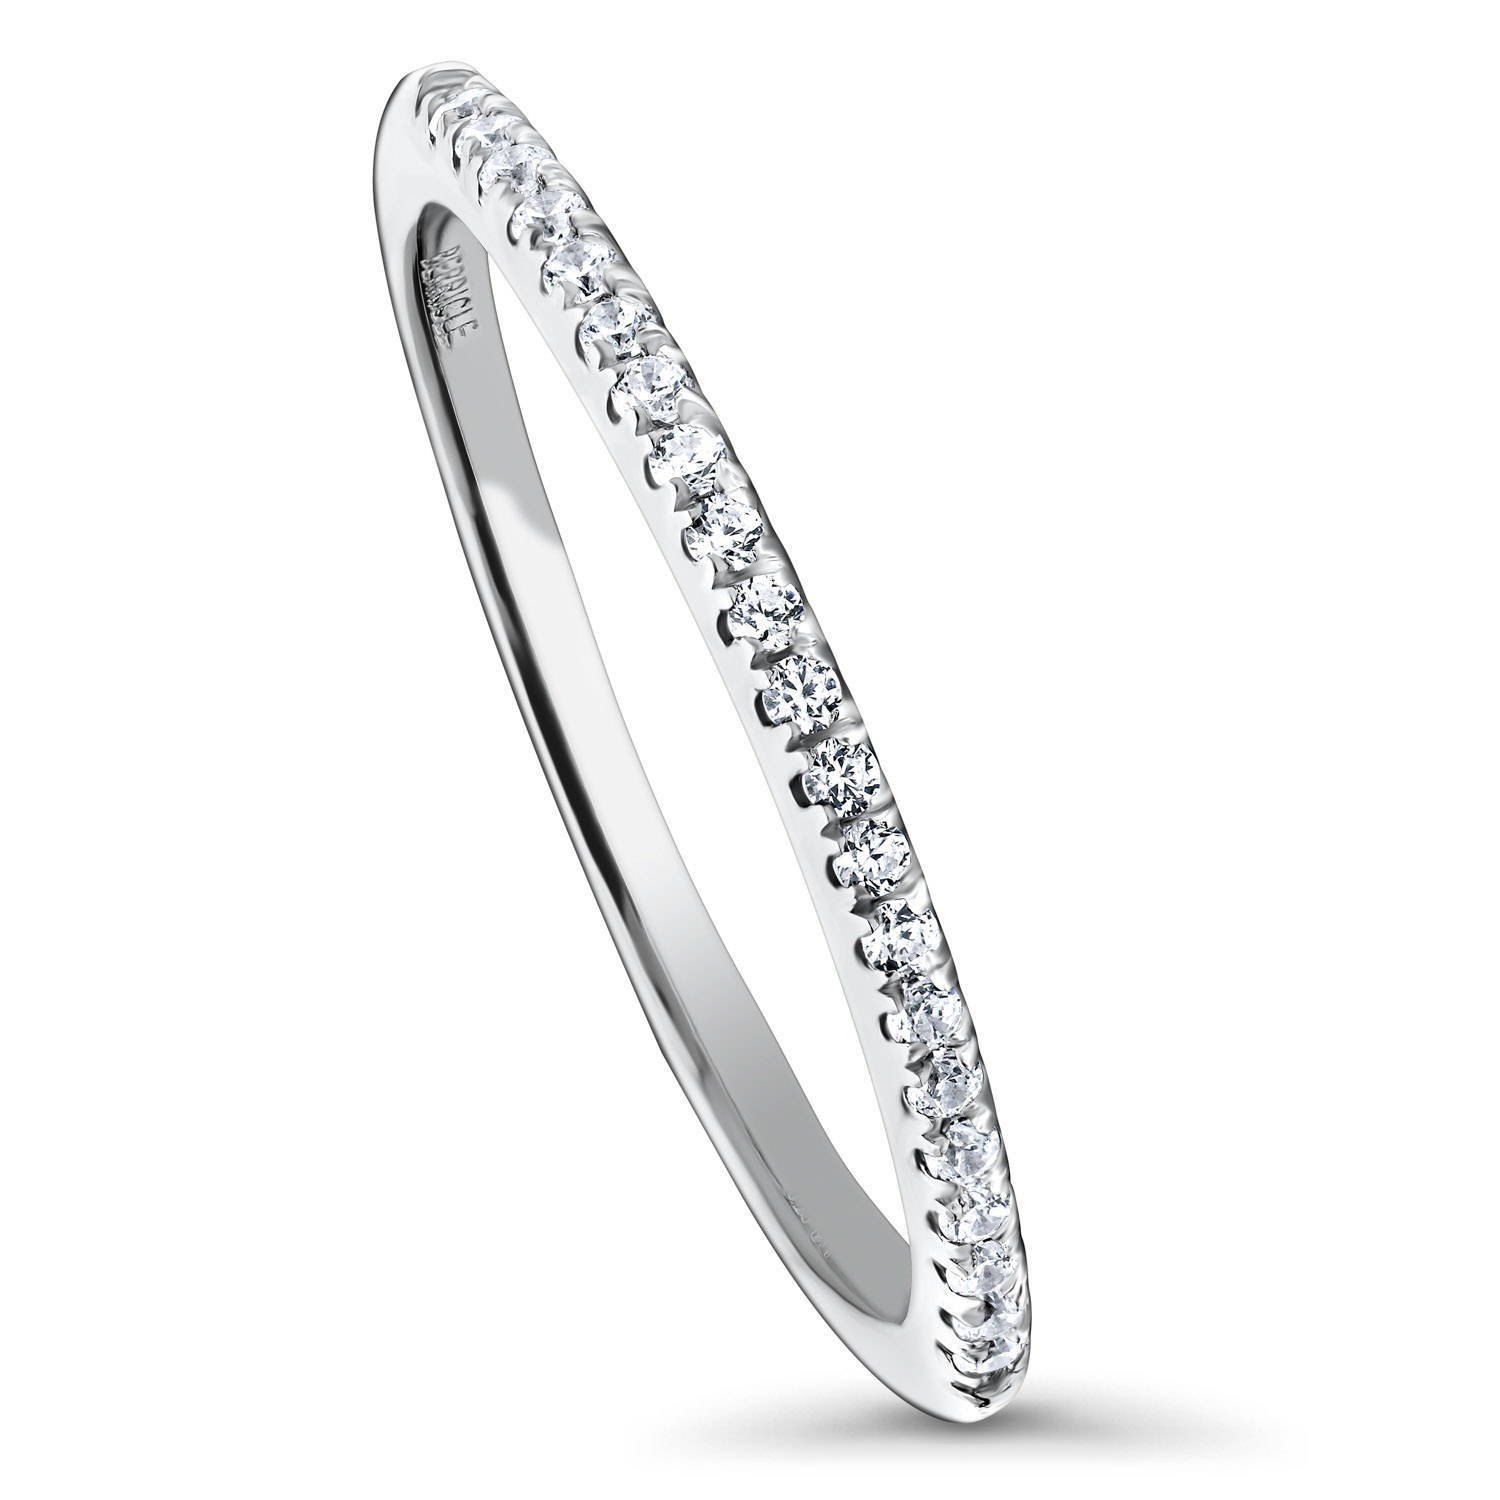 BERRICLE Rhodium Plated Sterling Silver Cubic Zirconia CZ Anniversary Half Eternity Band Ring Size 9